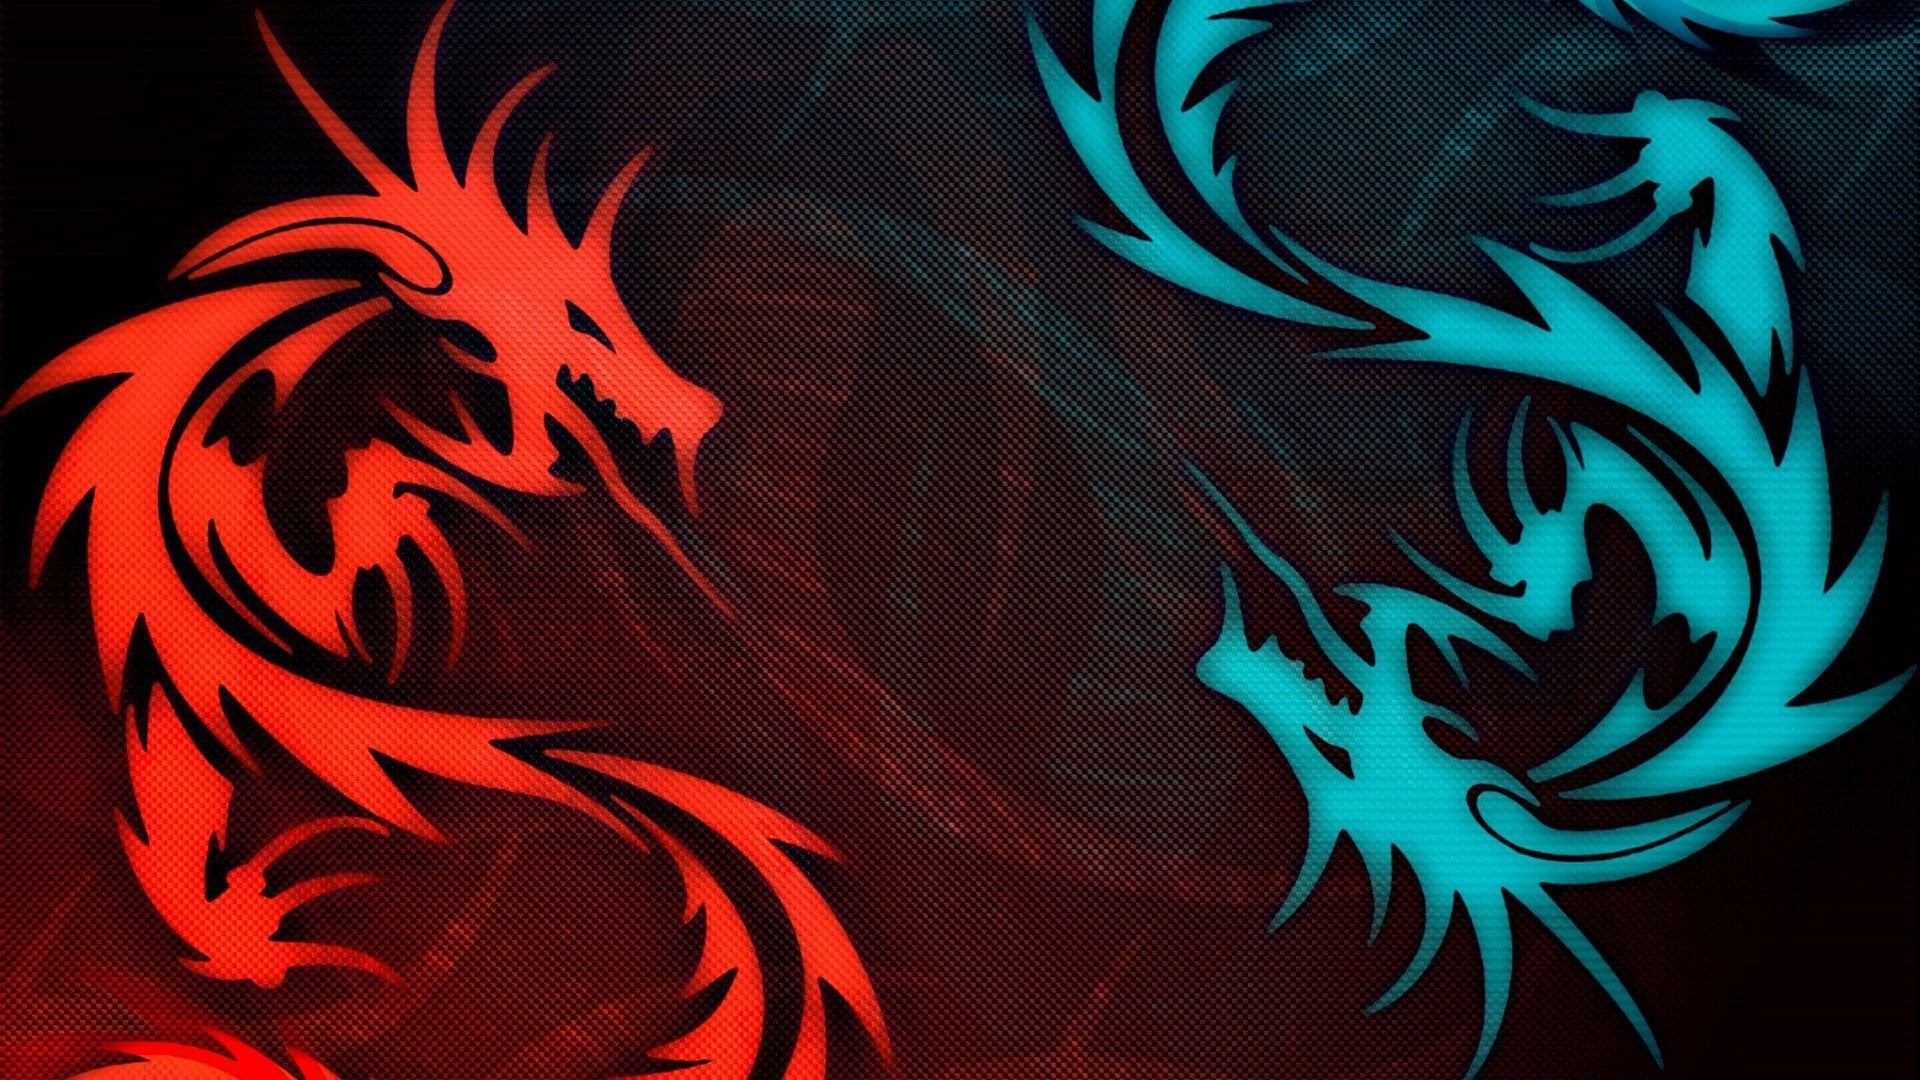 Msi dragon wallpaper 76 images - Dragon backgrounds 1920x1080 ...